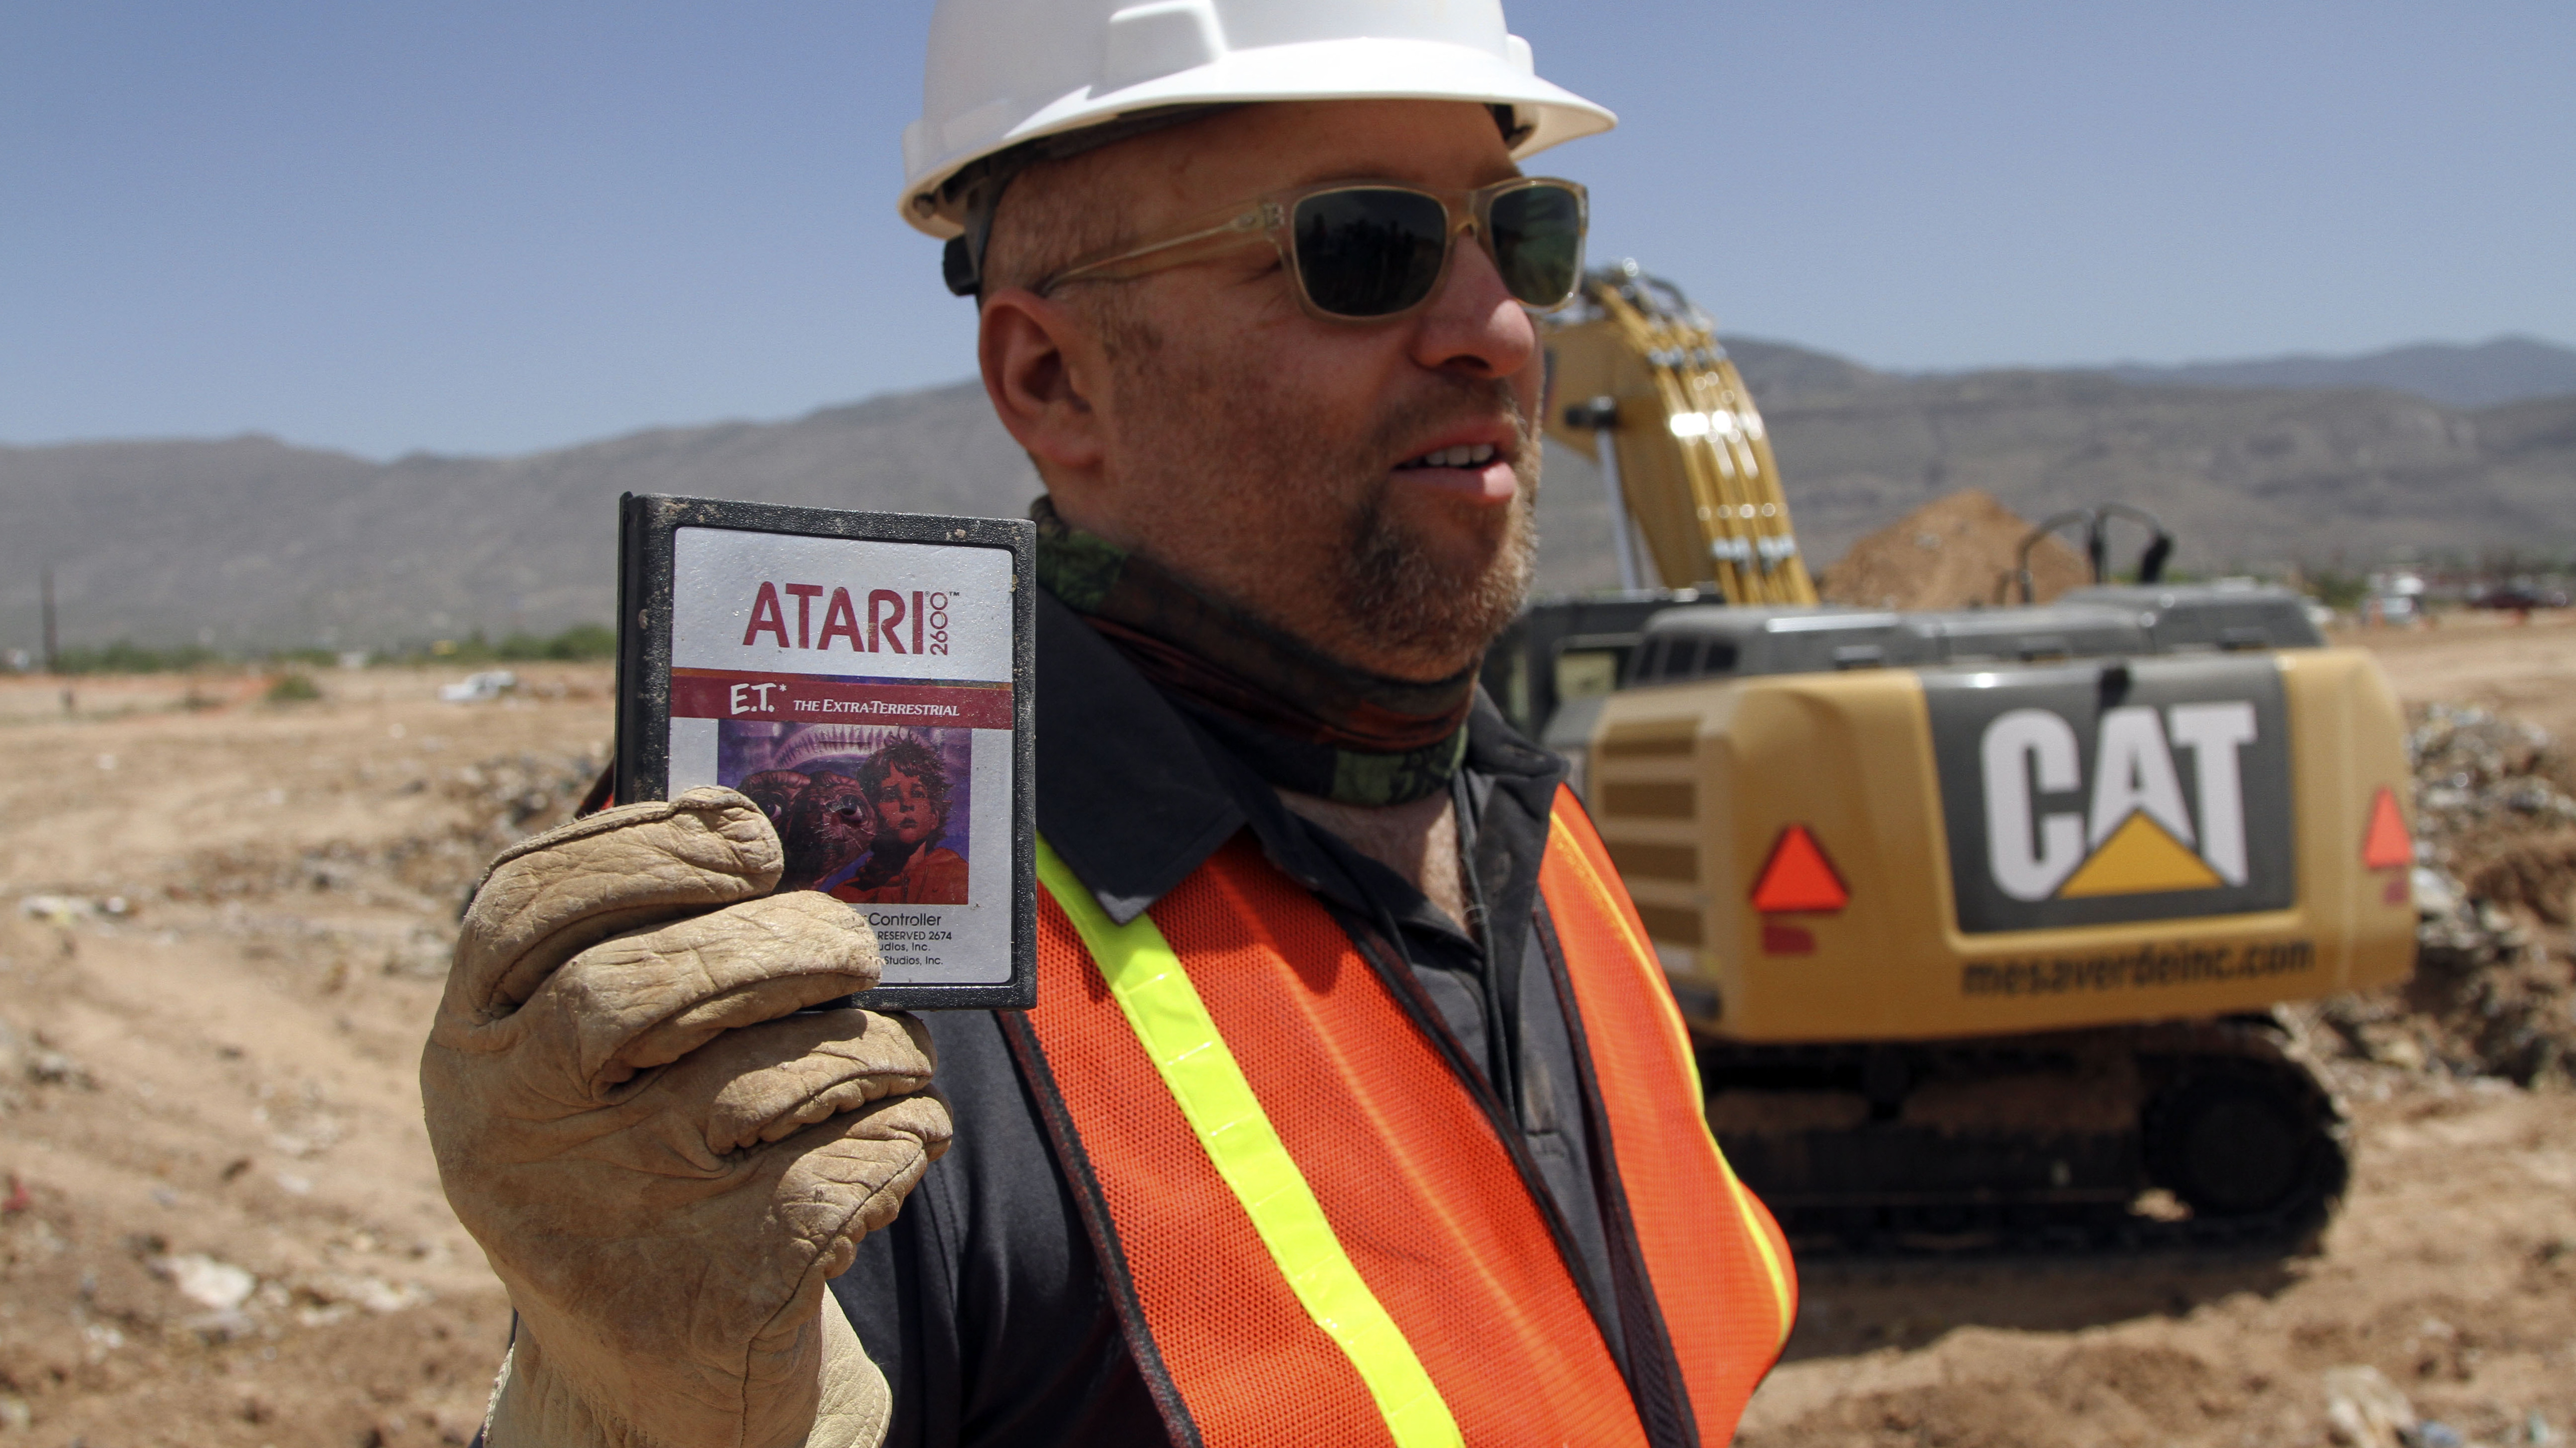 E.T.'s Home Is Found: Trove Of Atari Games Unearthed At Landfill